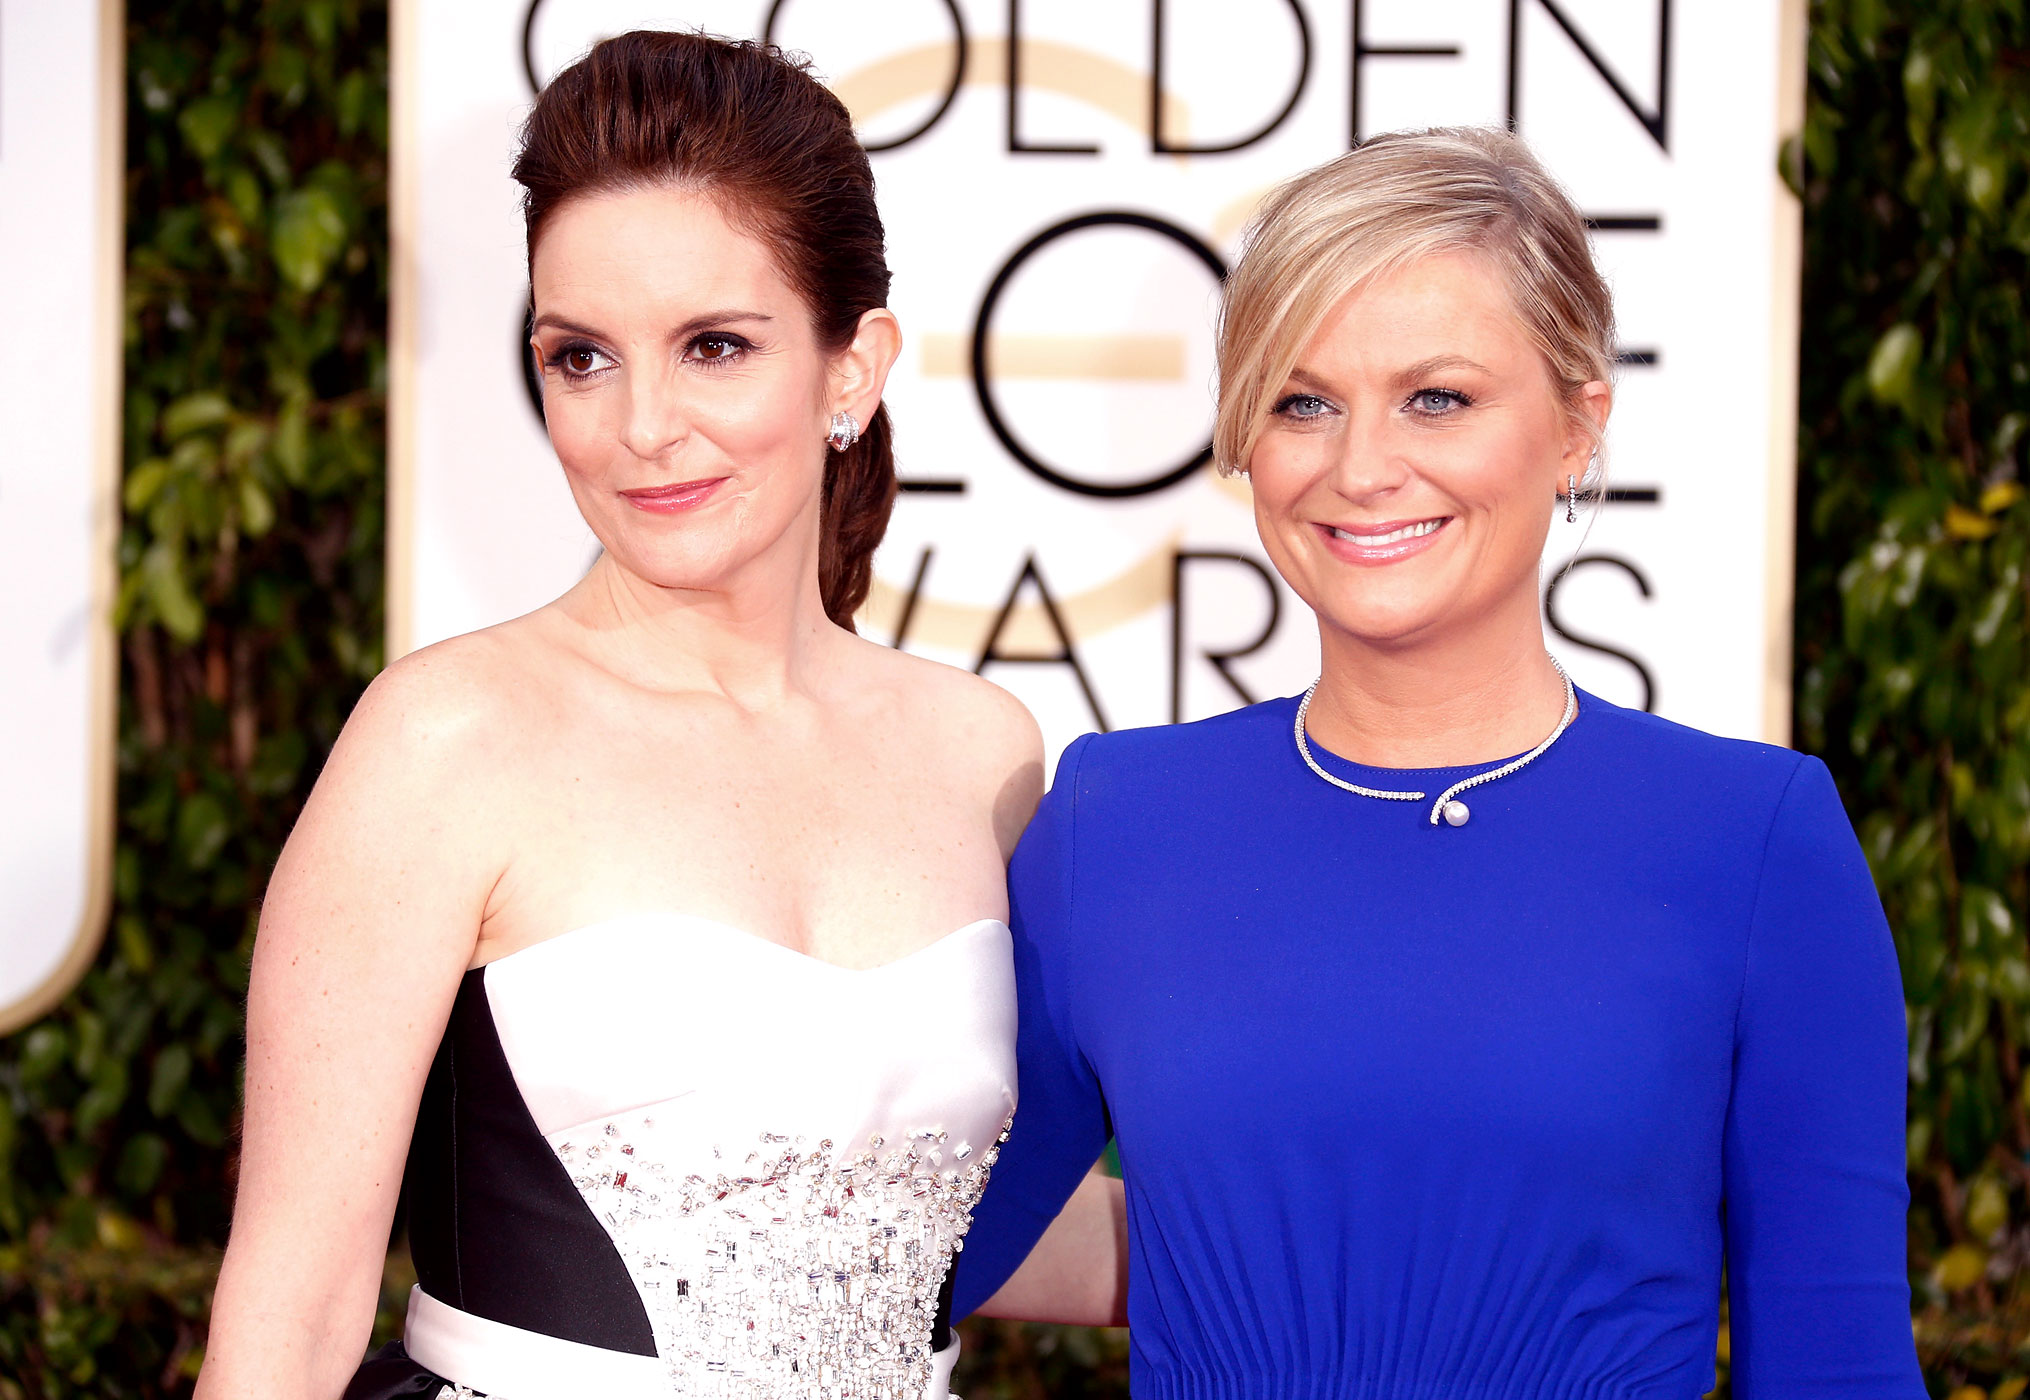 Hosts Tina Fey and Amy Poehler attend the 72nd Annual Golden Globe Awards at The Beverly Hilton Hotel on Jan. 11, 2015 in Beverly Hills, Calif.